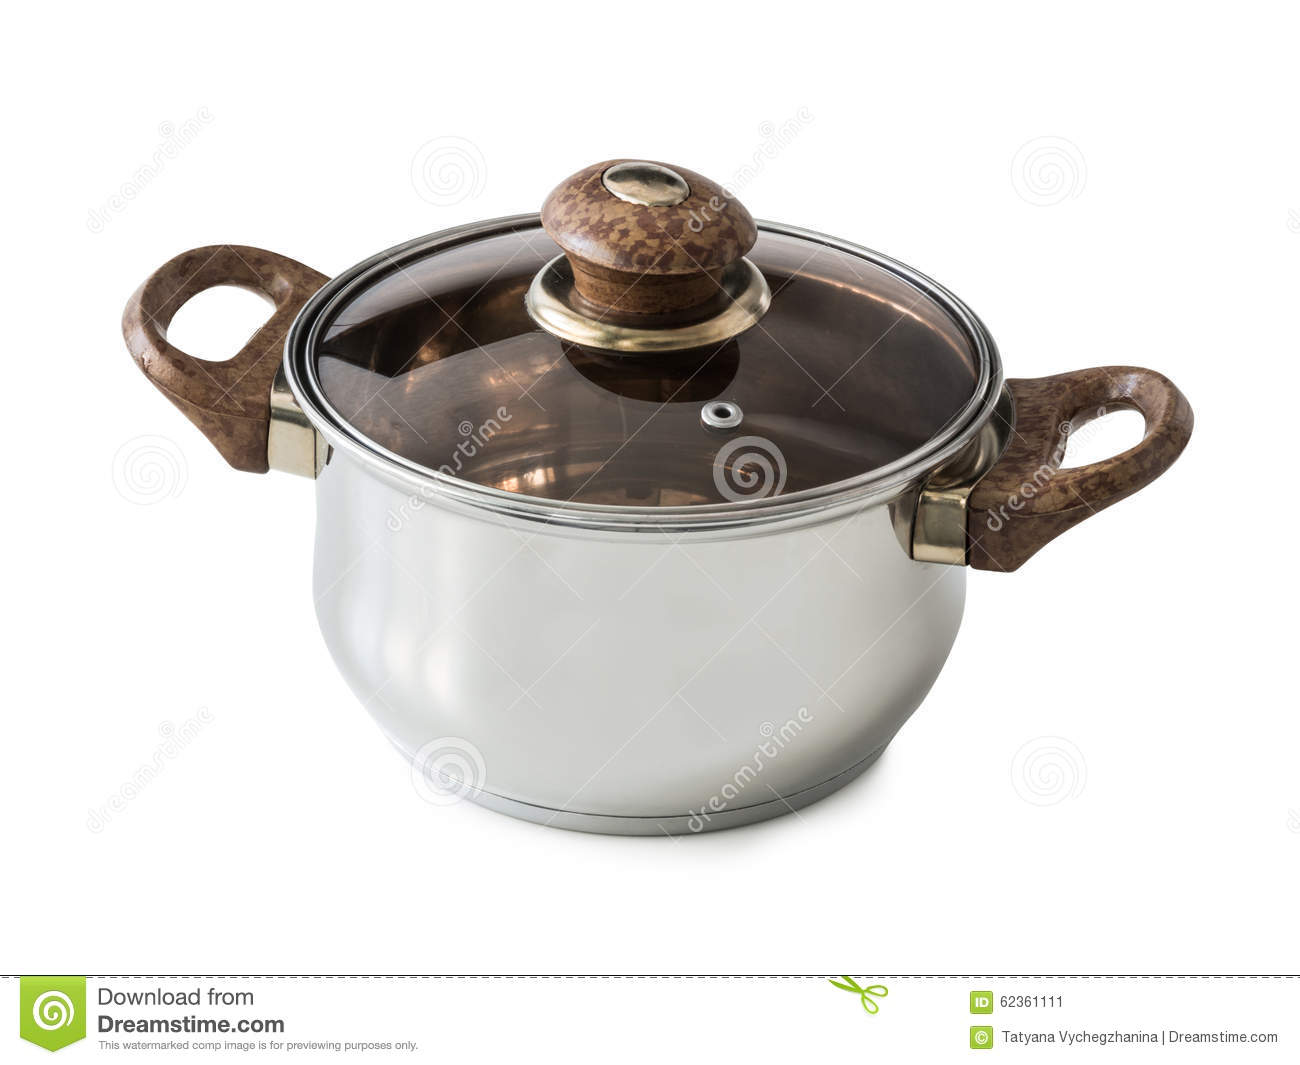 New Steel Pot With Glass Lid Stock Photo   Image  62361111